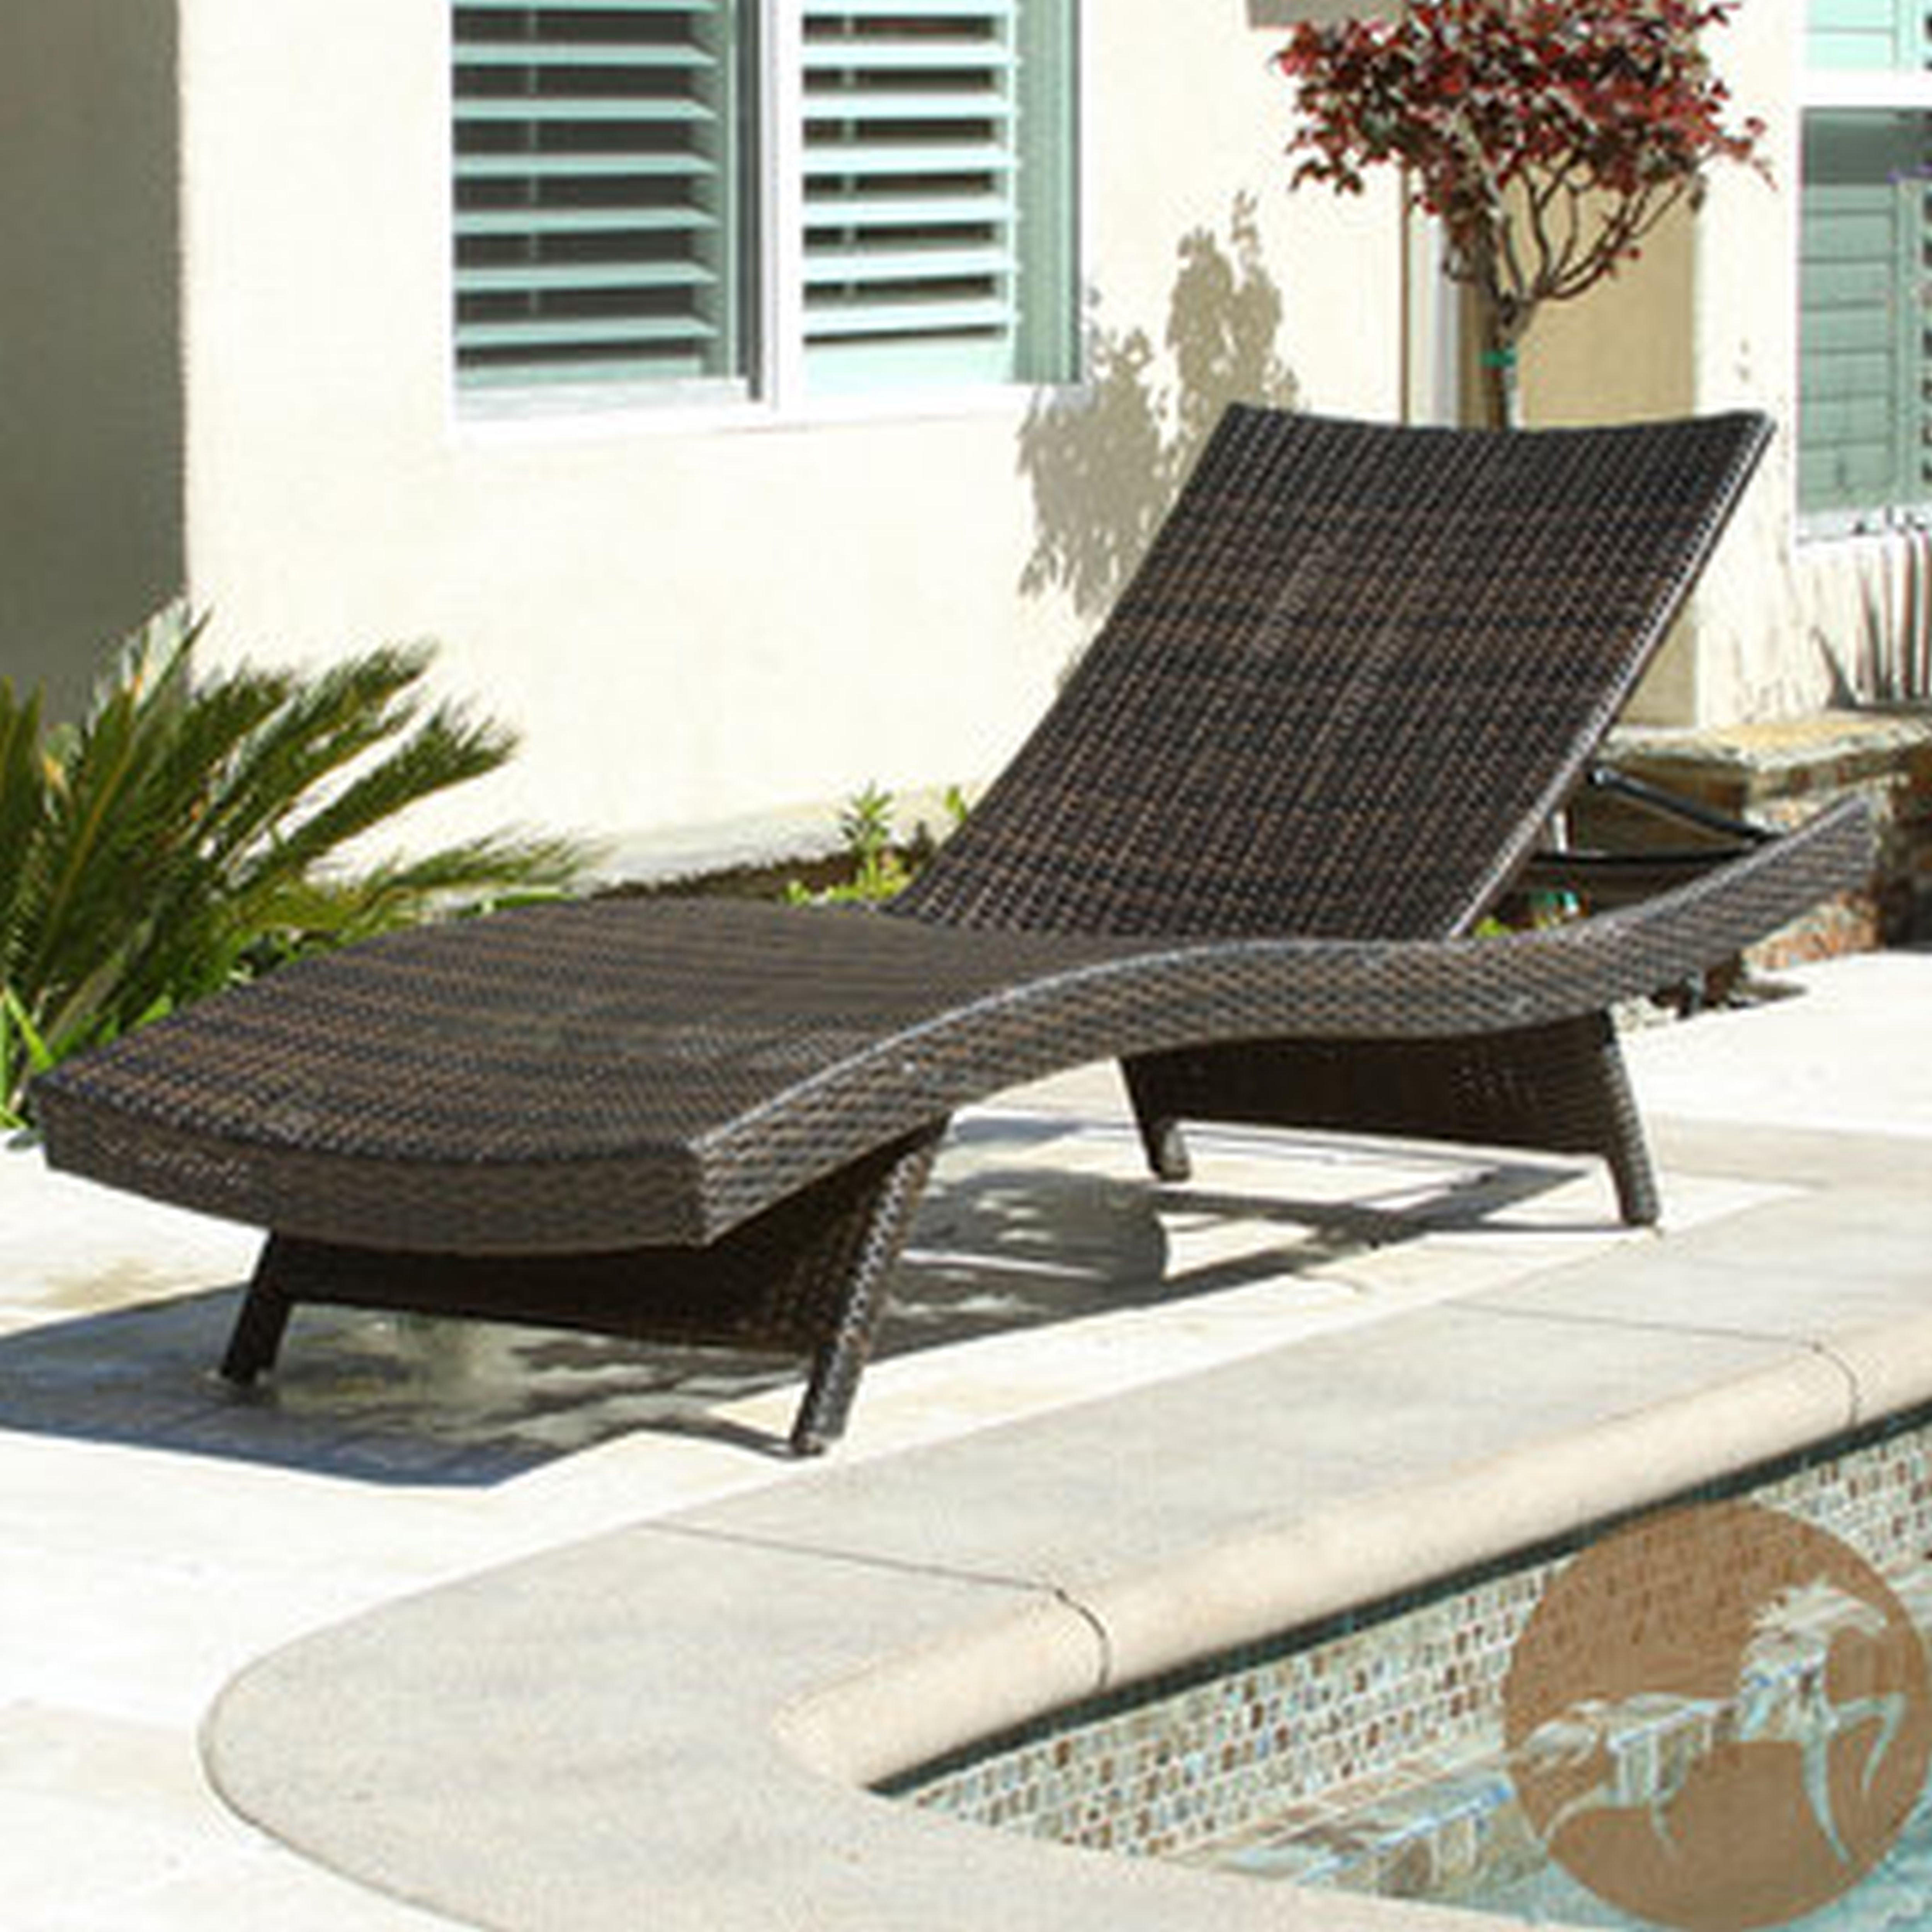 Convertible Chair : Cushions Rattan Chair Cushions High Back Patio Intended For Well Liked Chaise Lounge Chair Outdoor Cushions (View 4 of 15)